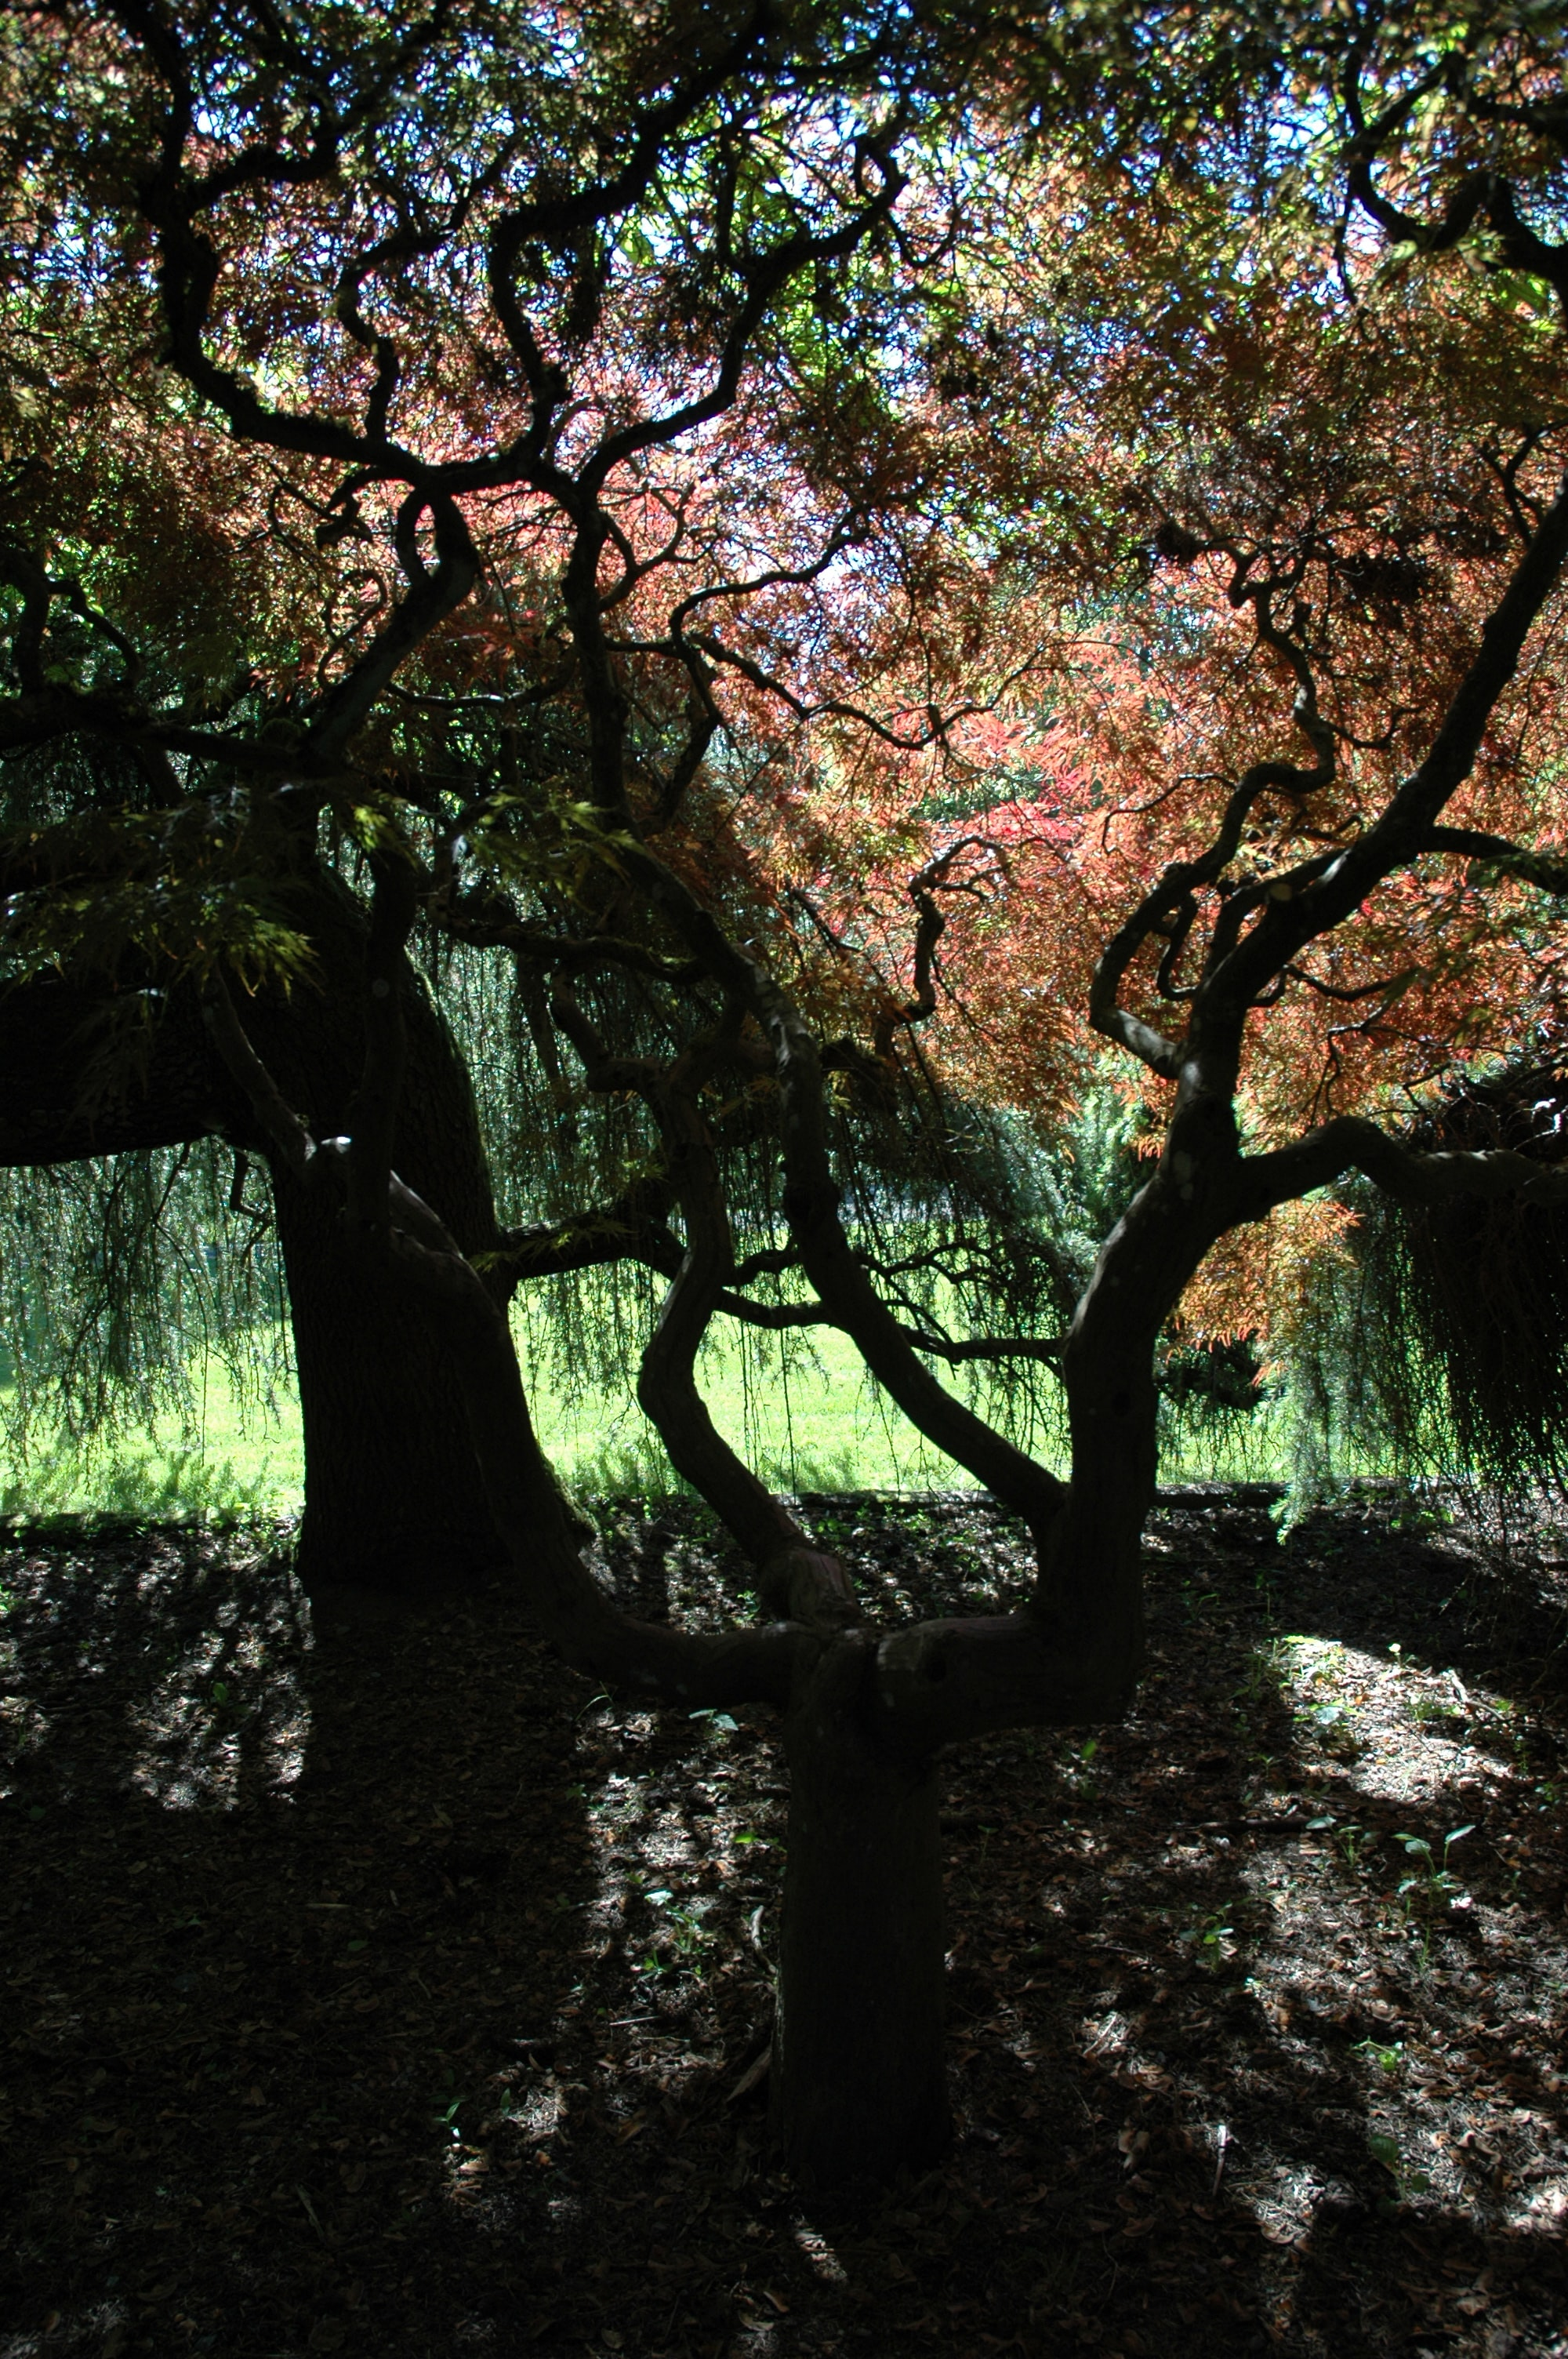 Japanese maple forest, whispering a story, Kubota American Japanese garden, Tukwila, Washington, USA